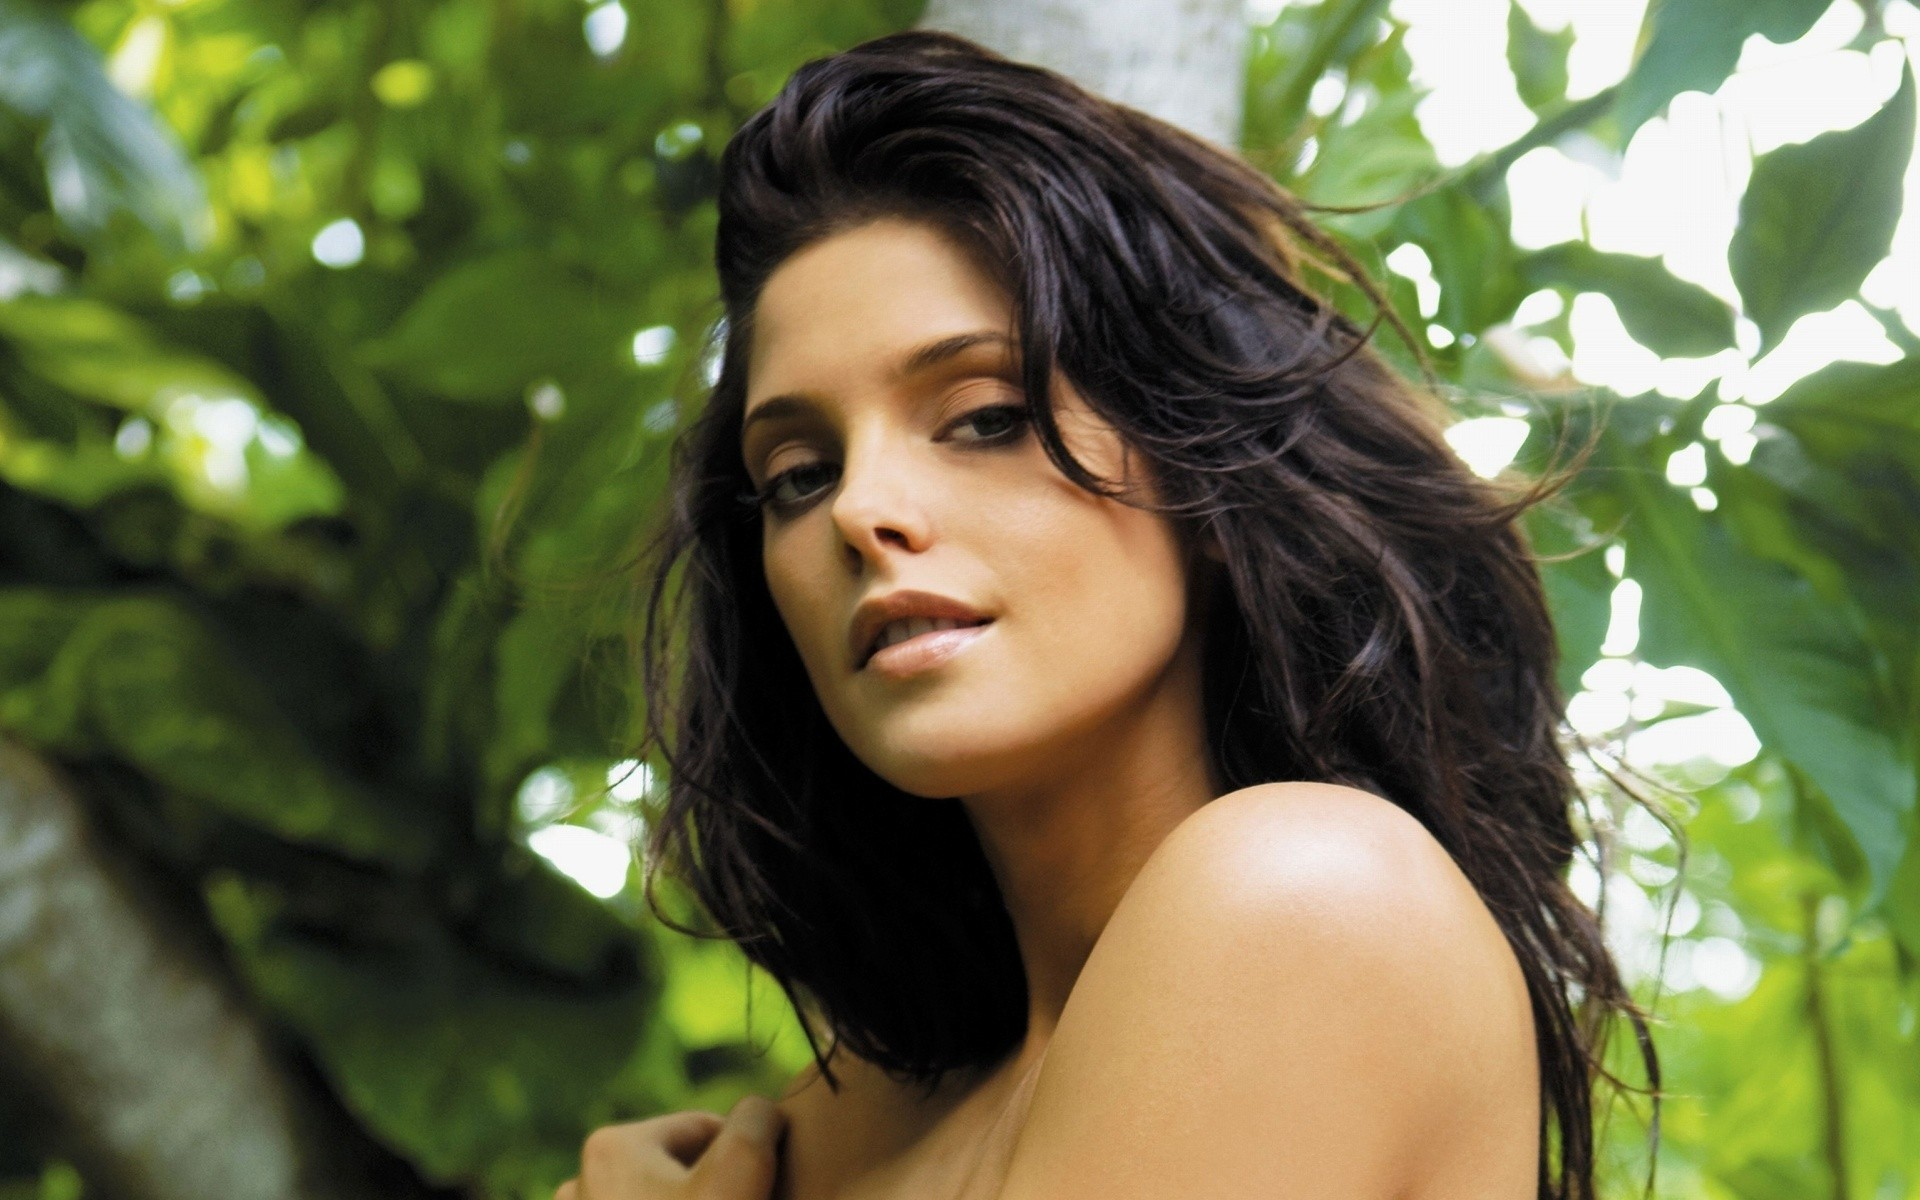 Star Celebrity Wallpapers Ashley Greene Hd Wallpapers: Ashley Greene PIC, HD Celebrities, 4k Wallpapers, Images